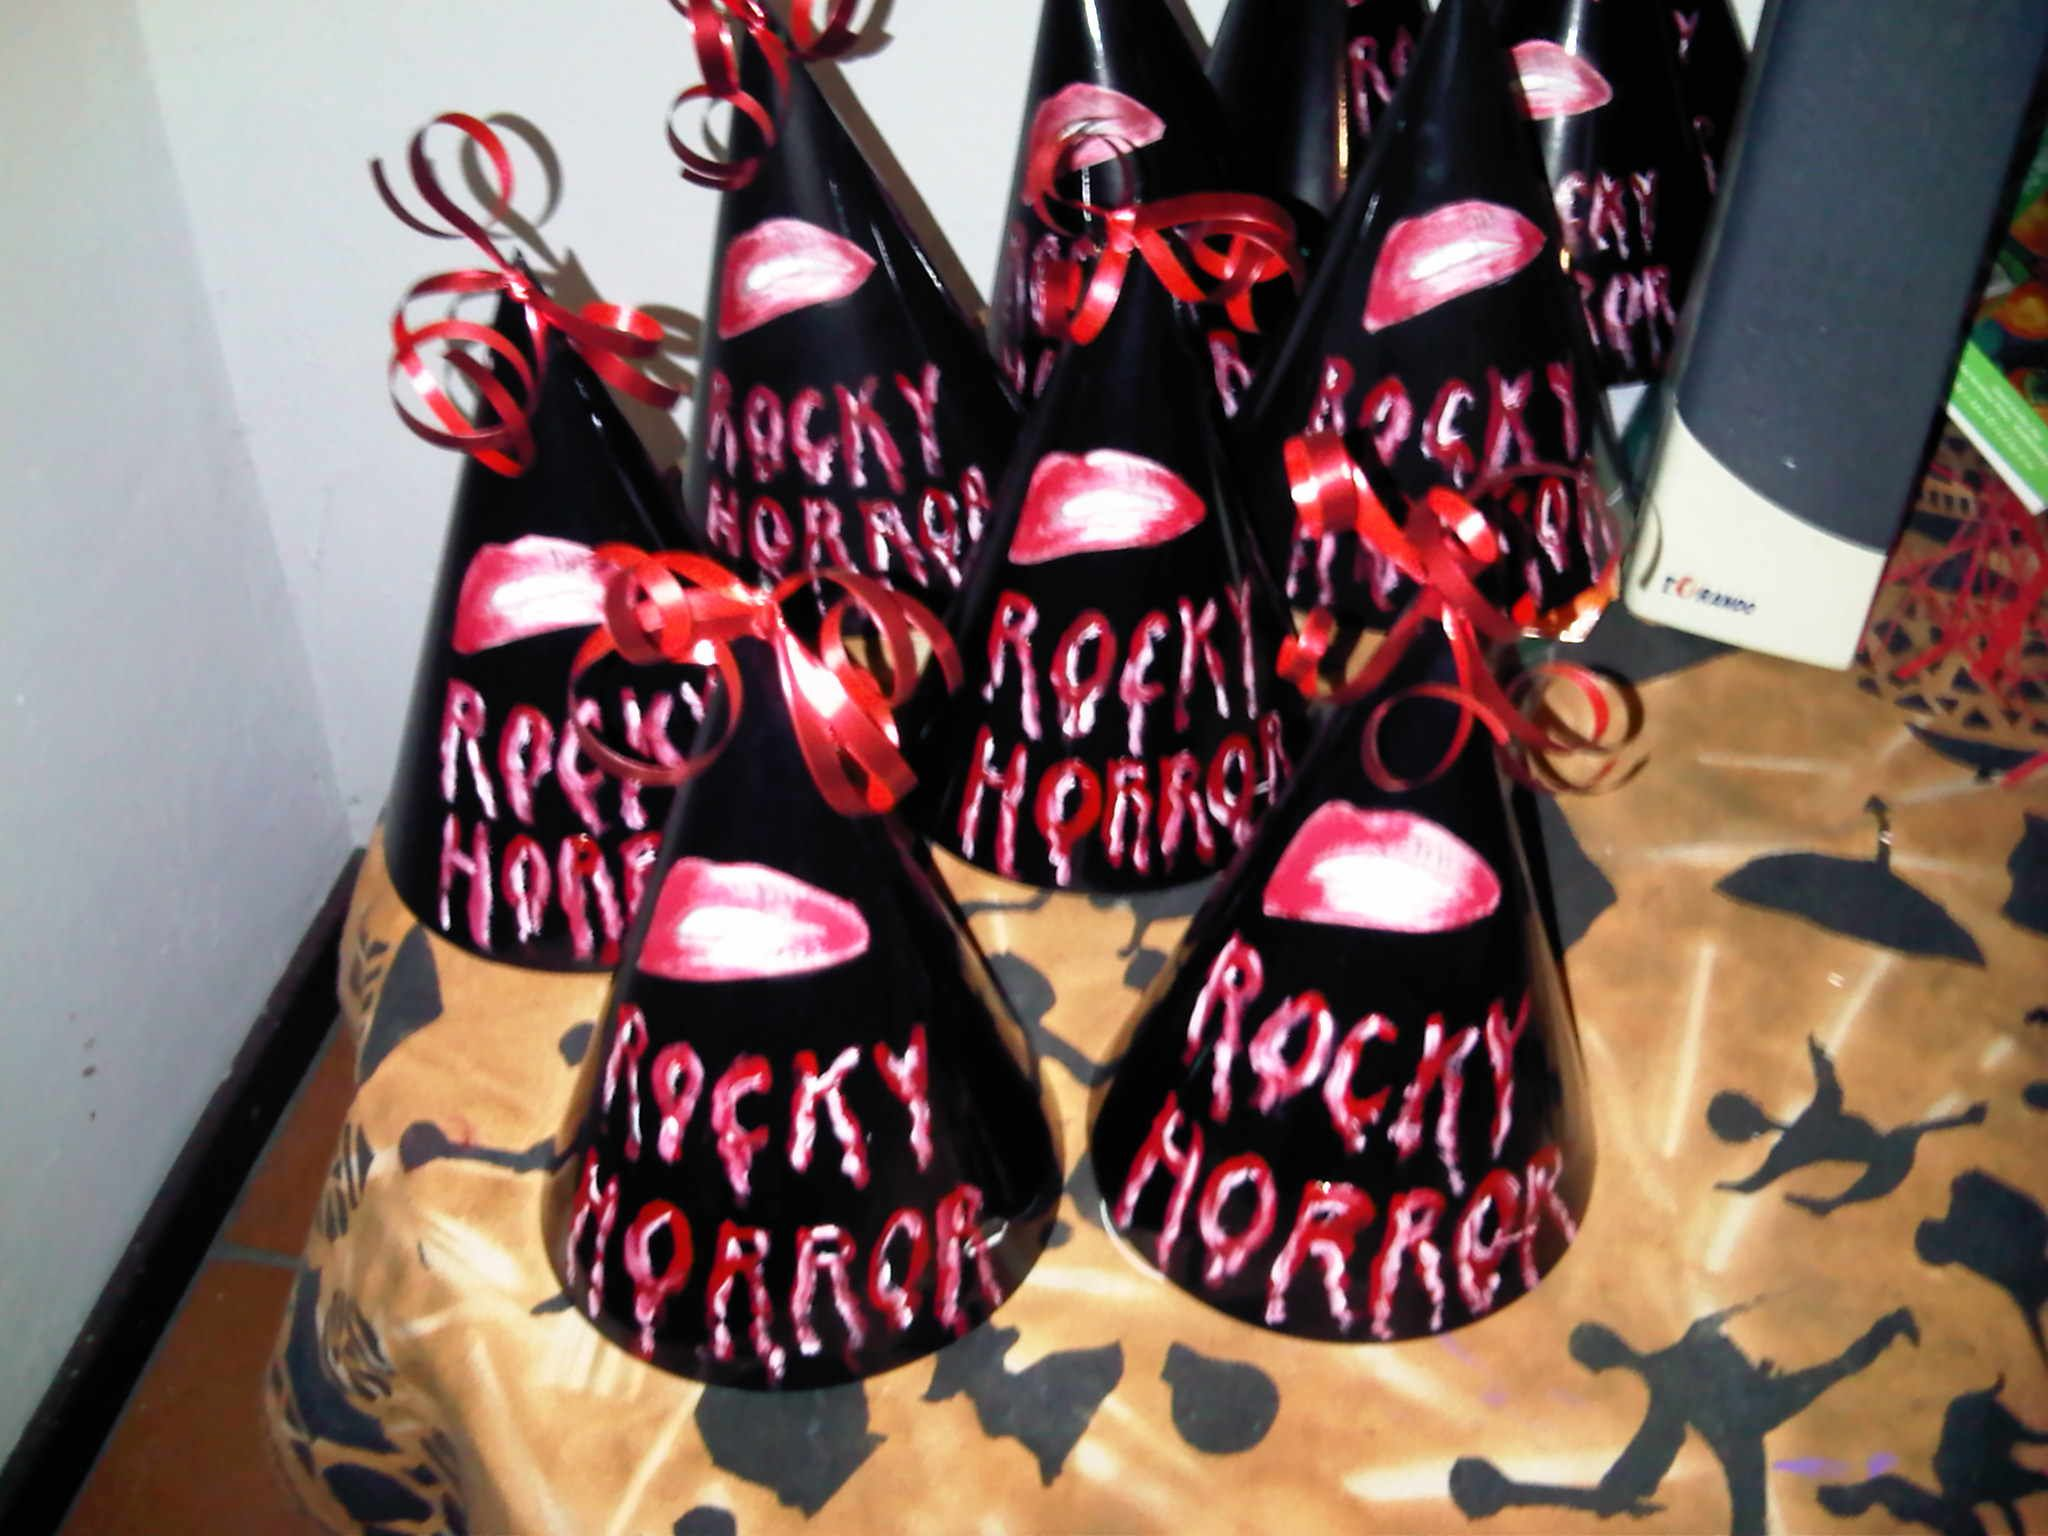 Rocky horror picture show themed party hatsbuy any black party hat rocky horror picture show themed party hatsbuy any black party hatcut out bookmarktalkfo Gallery